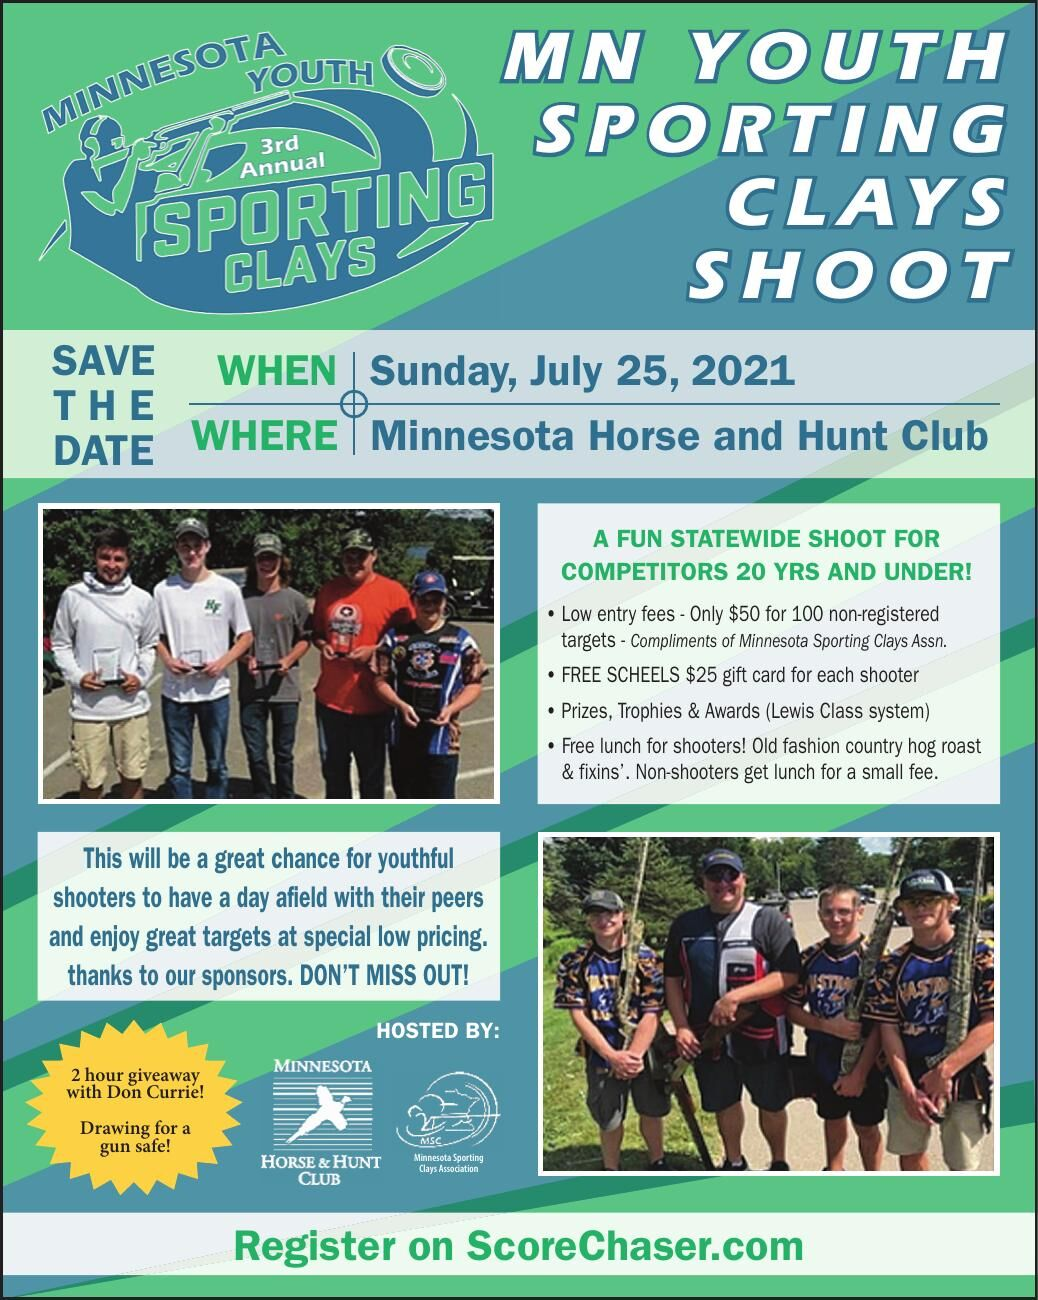 MN YOUTH SPORTING CLAYS SHOOT save wHen